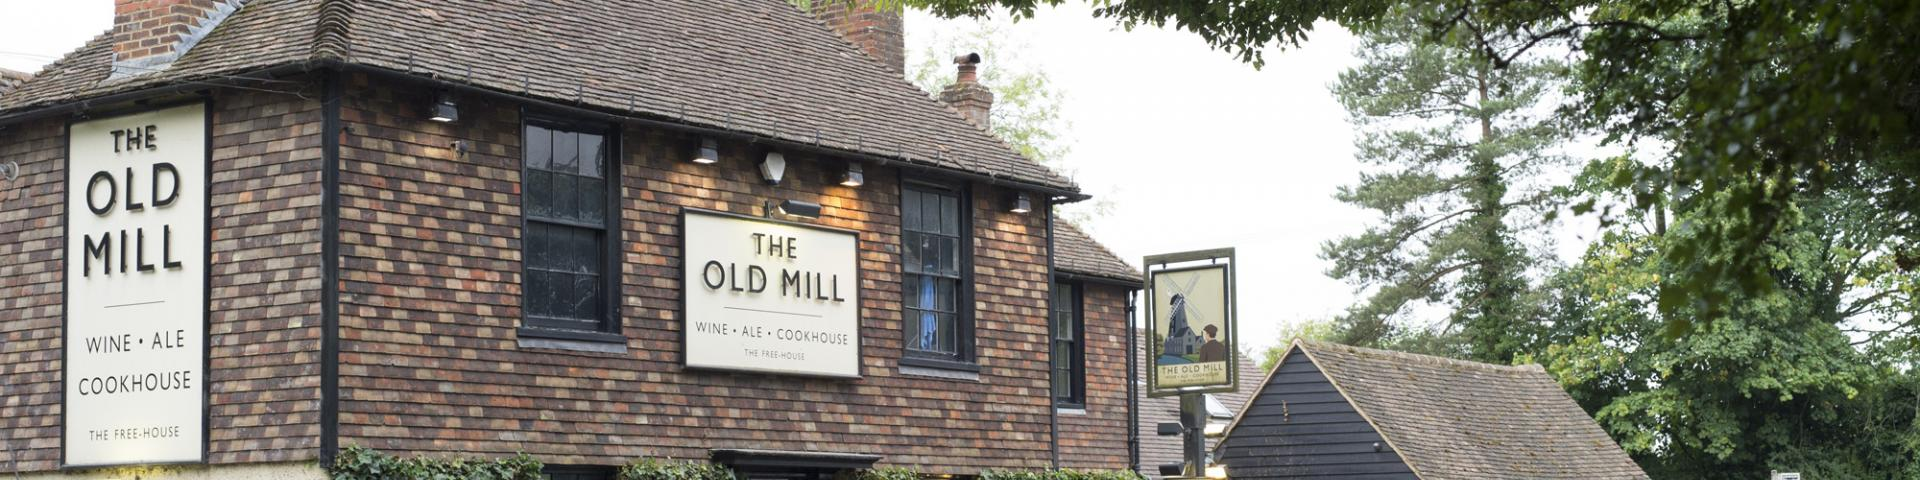 Old Mill, Kennington, Ashford